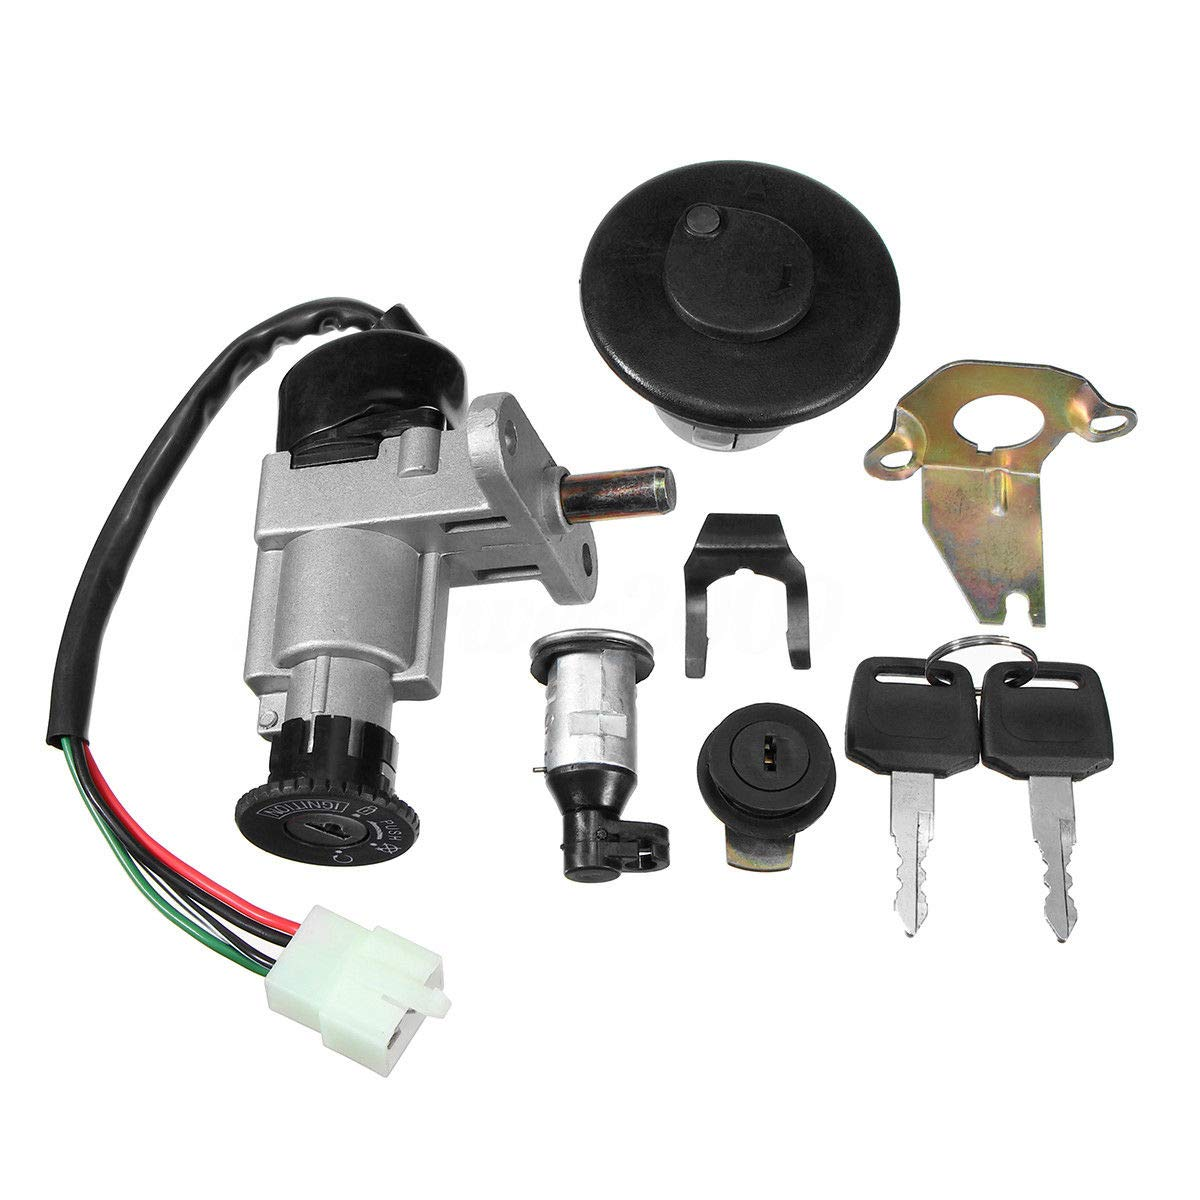 Ignition Switch Lock Key Fuel Cap Replacement for Taotao Moped Scooter 49cc 50cc 150cc GY6 Republe